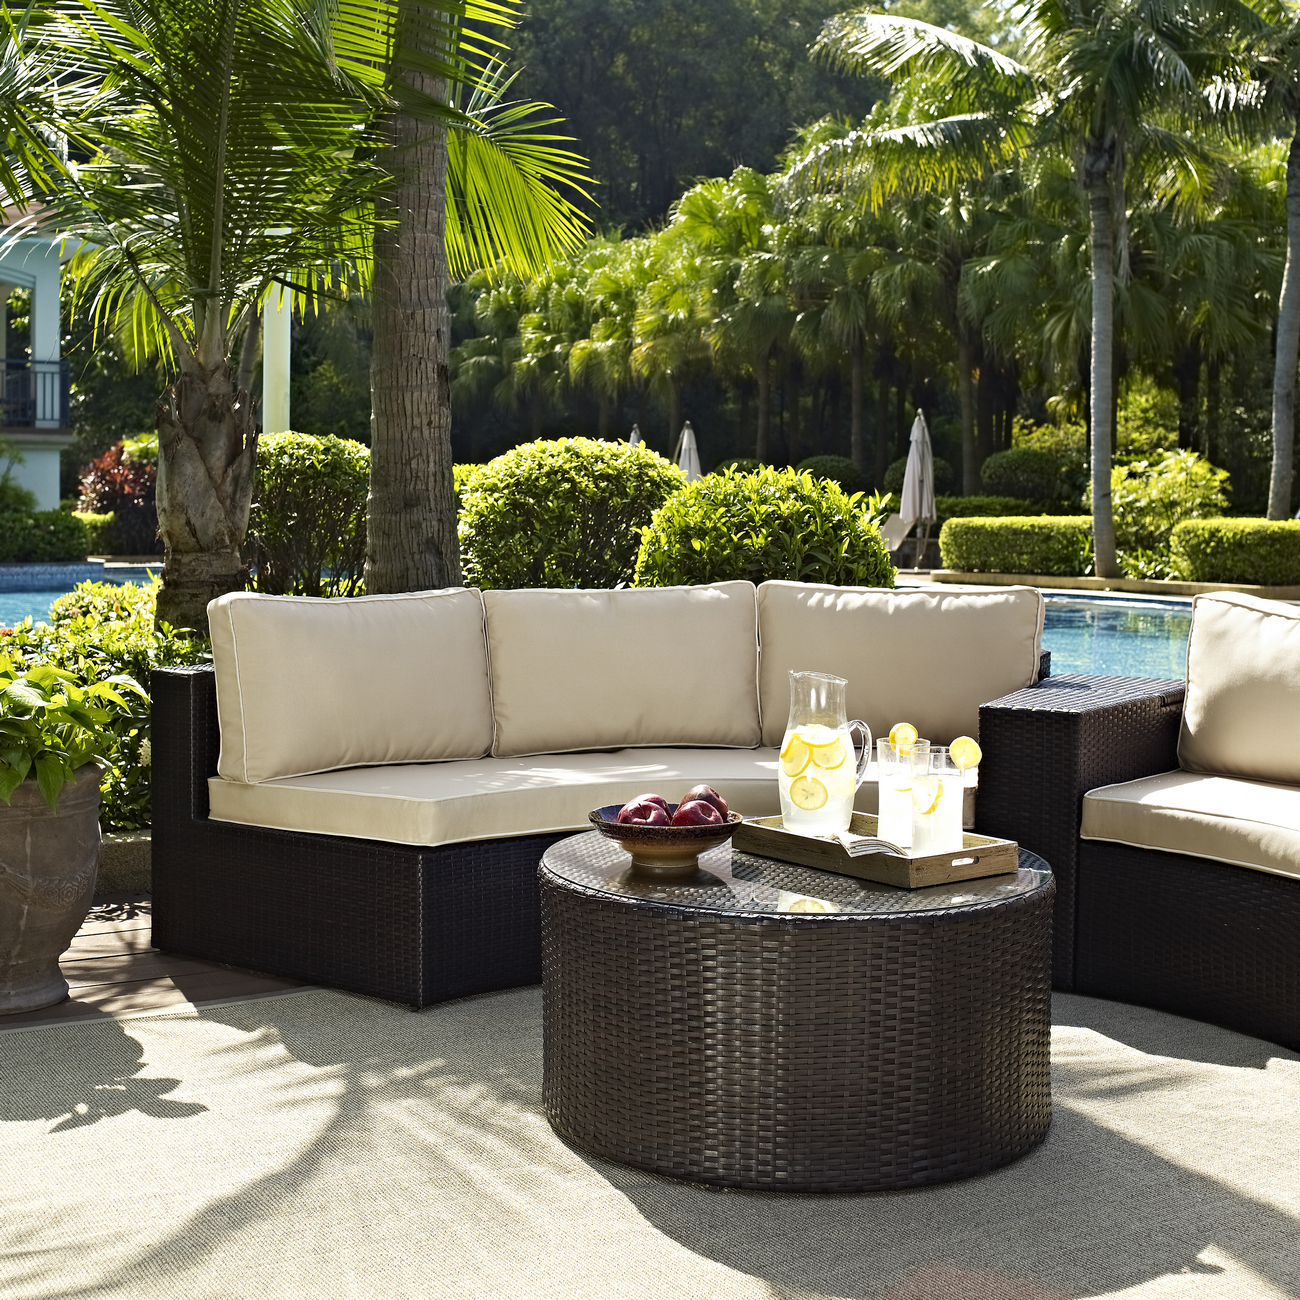 Cushion | Outdoor | Coffee | Glass | Piece | Round | Table | Sofa | Seat | Set | Top